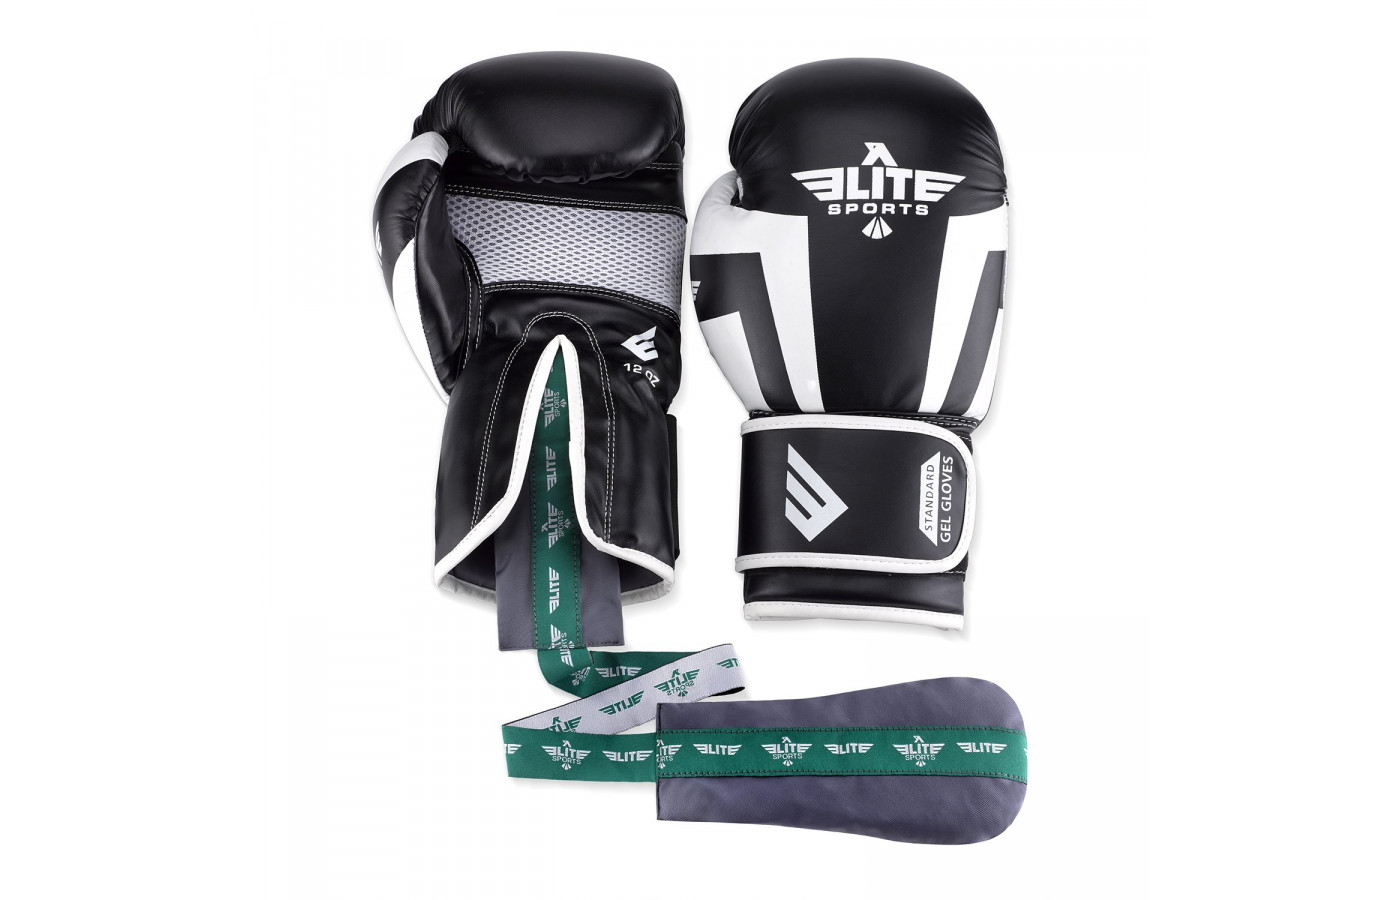 elite sports deodorizer in gloves